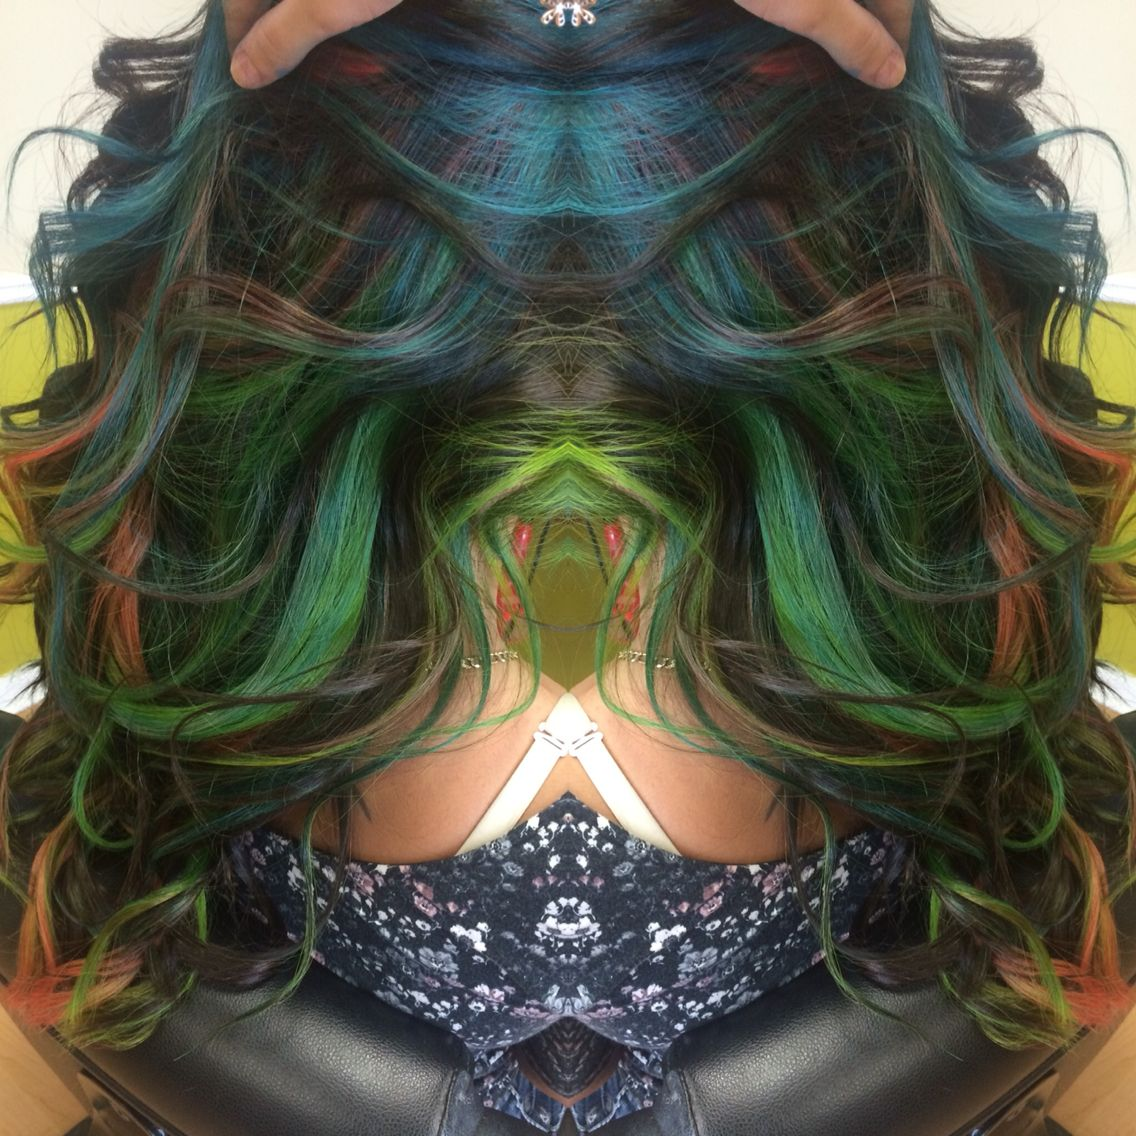 Hair Color Done In Pink Blue Green With A Brown Base Hair